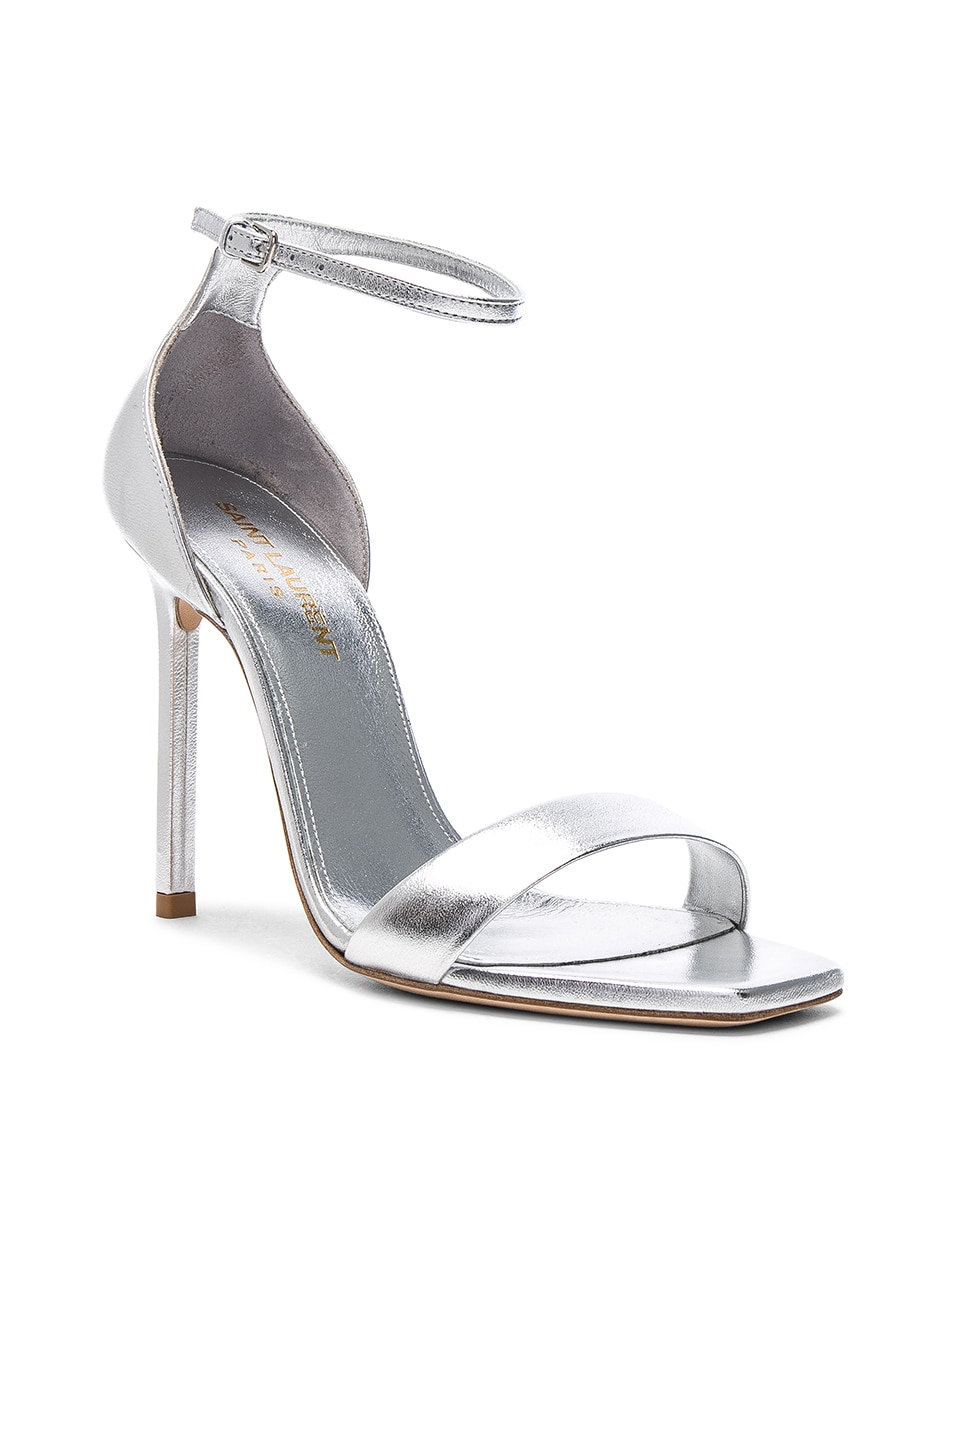 Image 2 of Saint Laurent Metallic Leather Amber Ankle Strap Heels in Silver